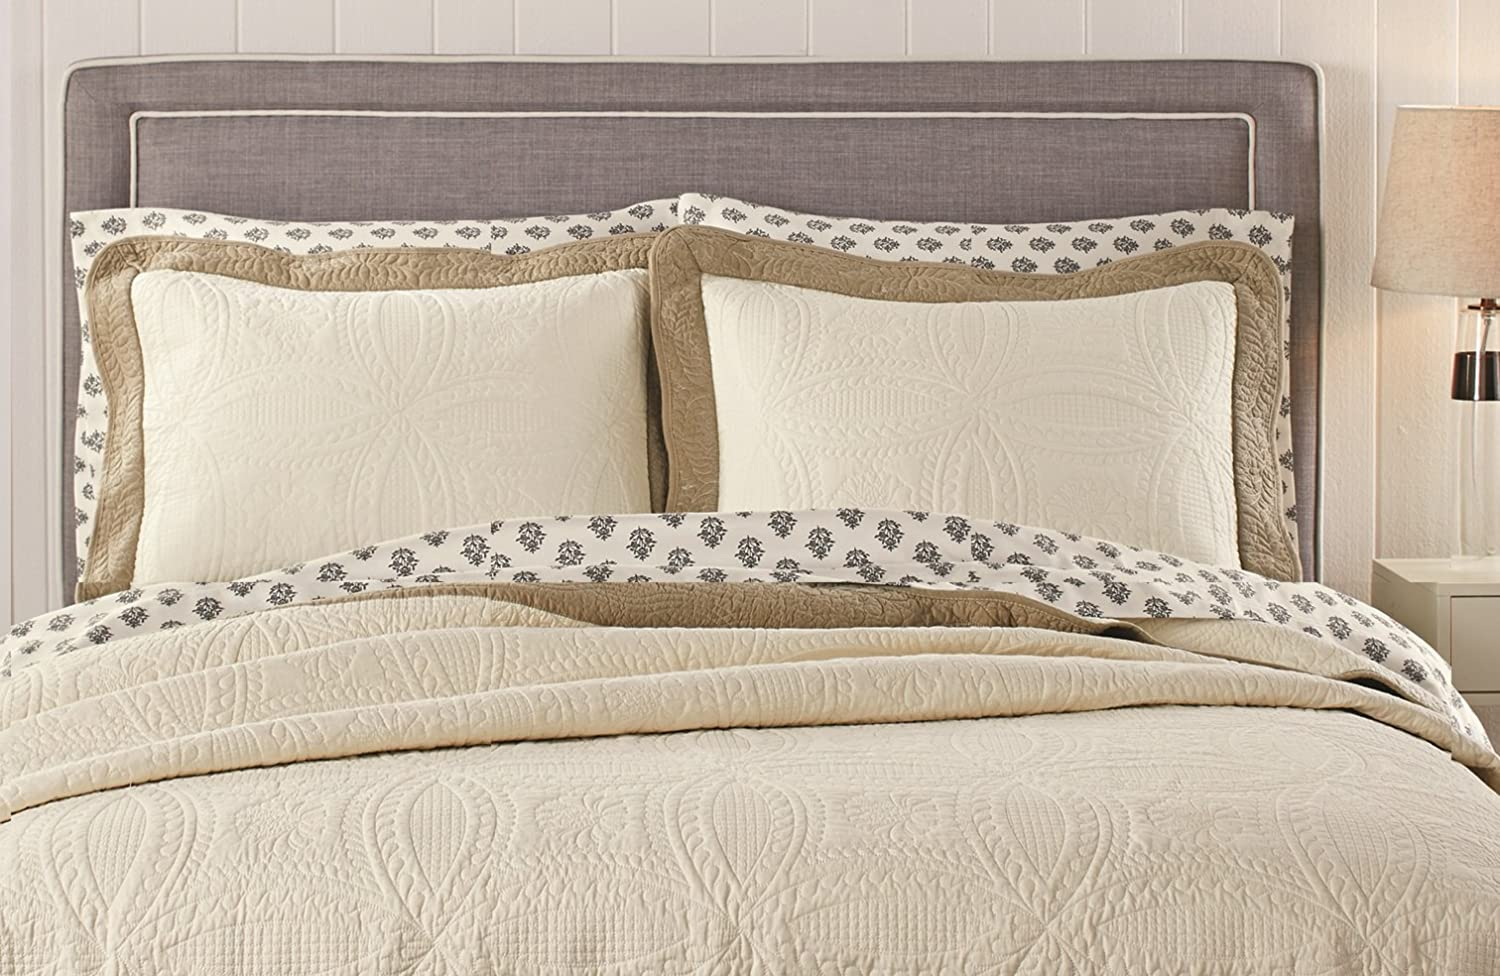 Better Homes and Gardens Solid Border Quilt Collection King Shams Set of 2 only